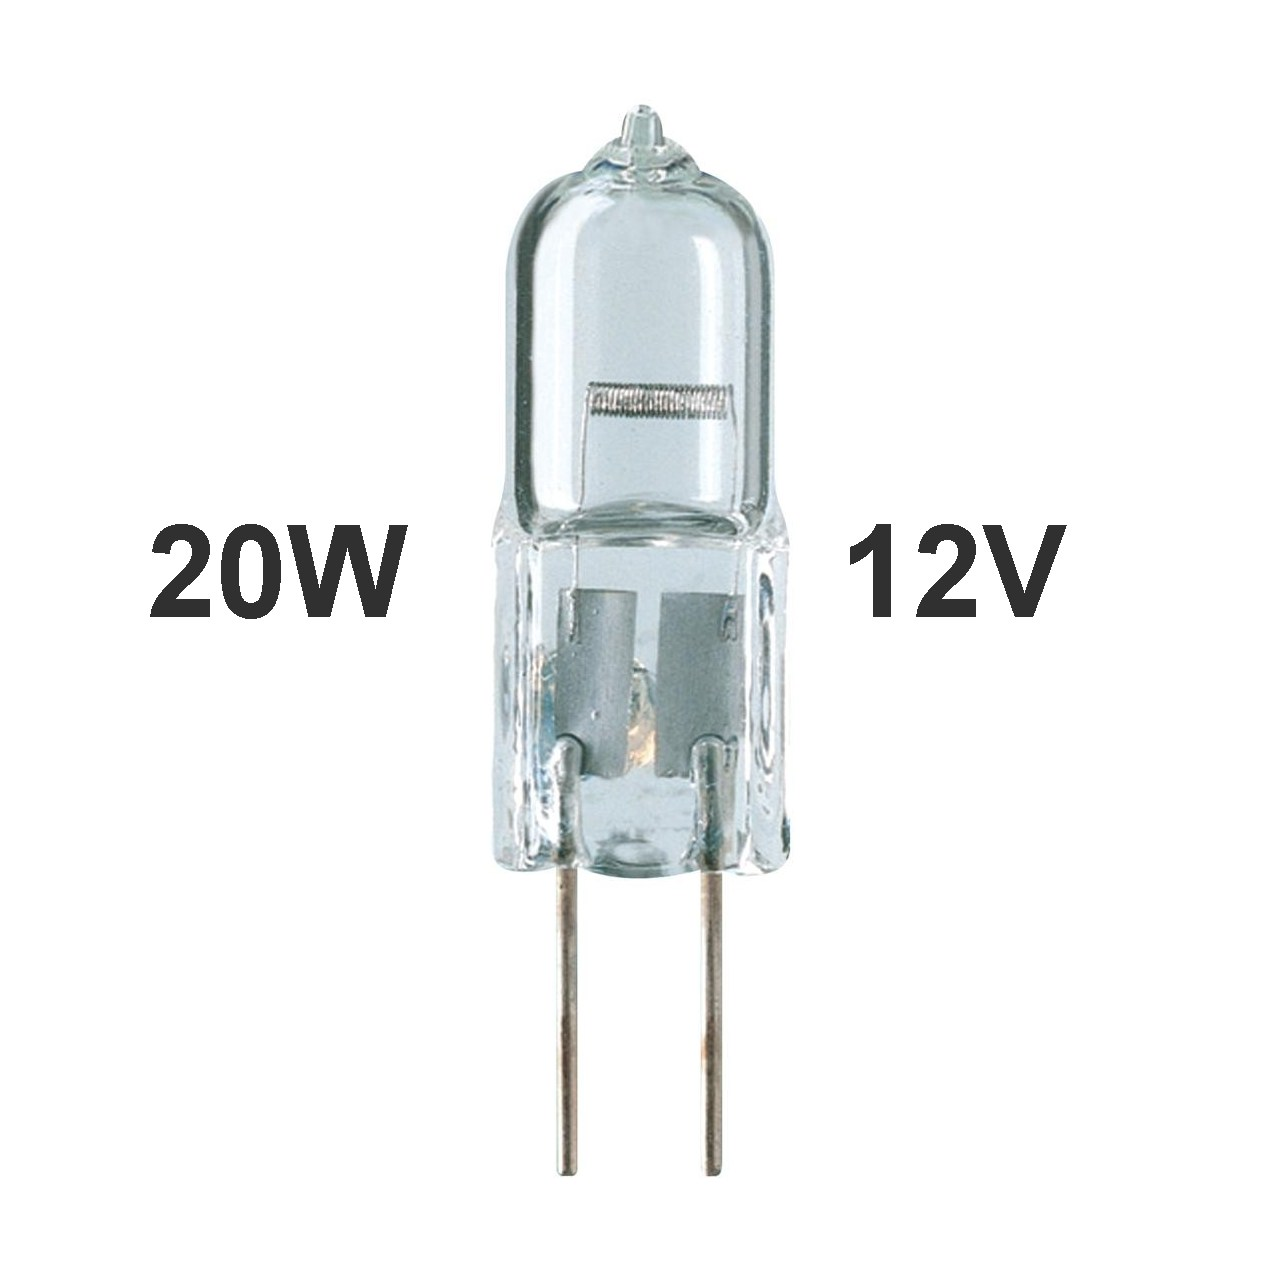 Brizzo Lighting Stores 20w Halogen G4 Bi Pin Bulb 12v Low Voltage